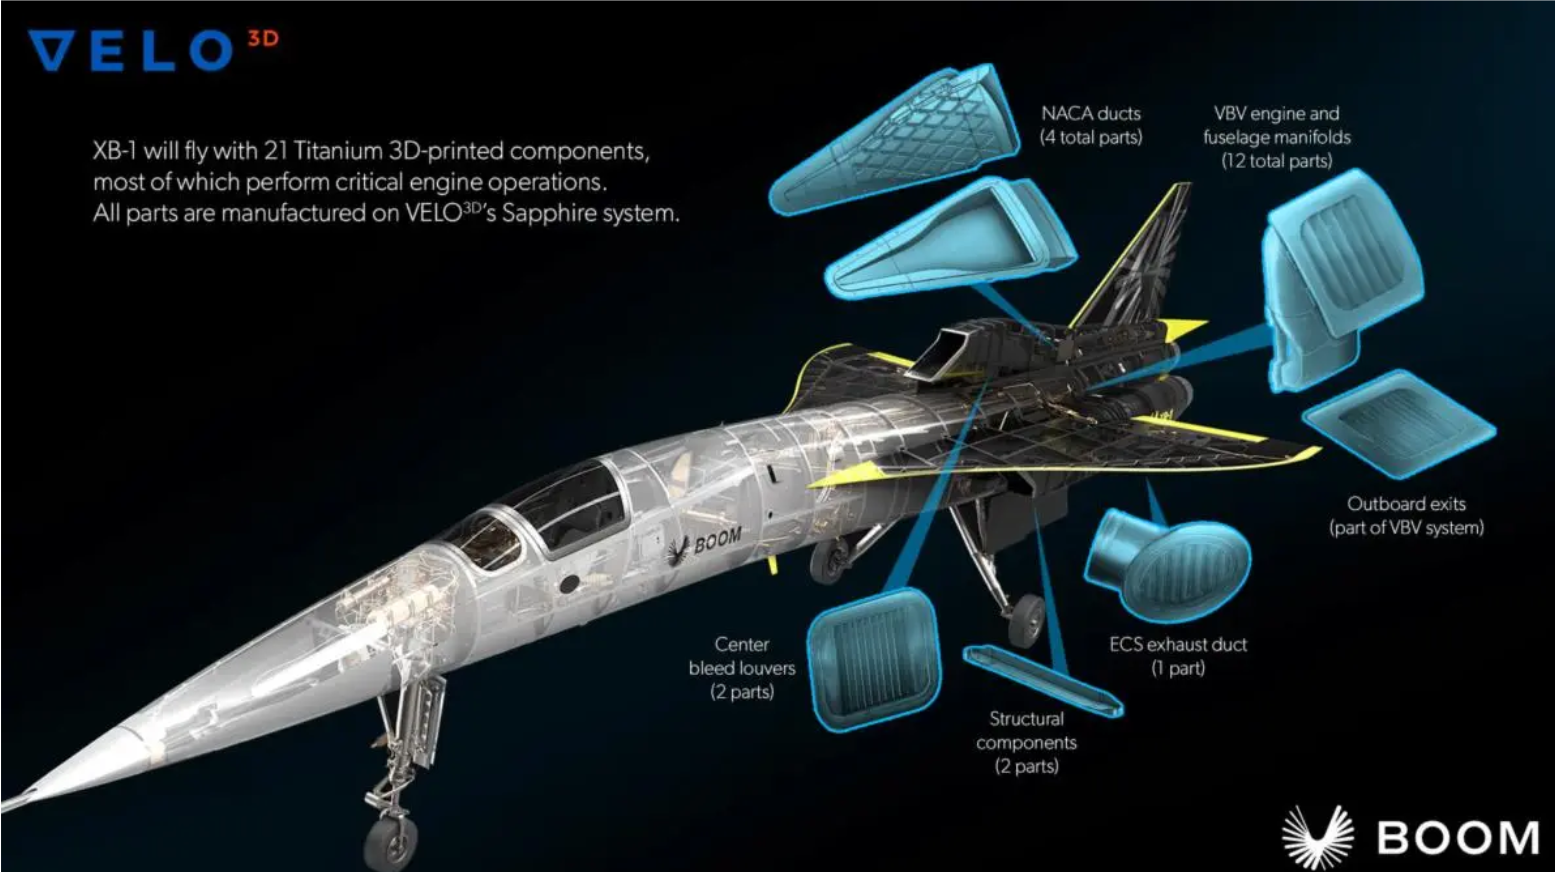 The 3D printed components of the XB-1. Image via Boom Supersonic.